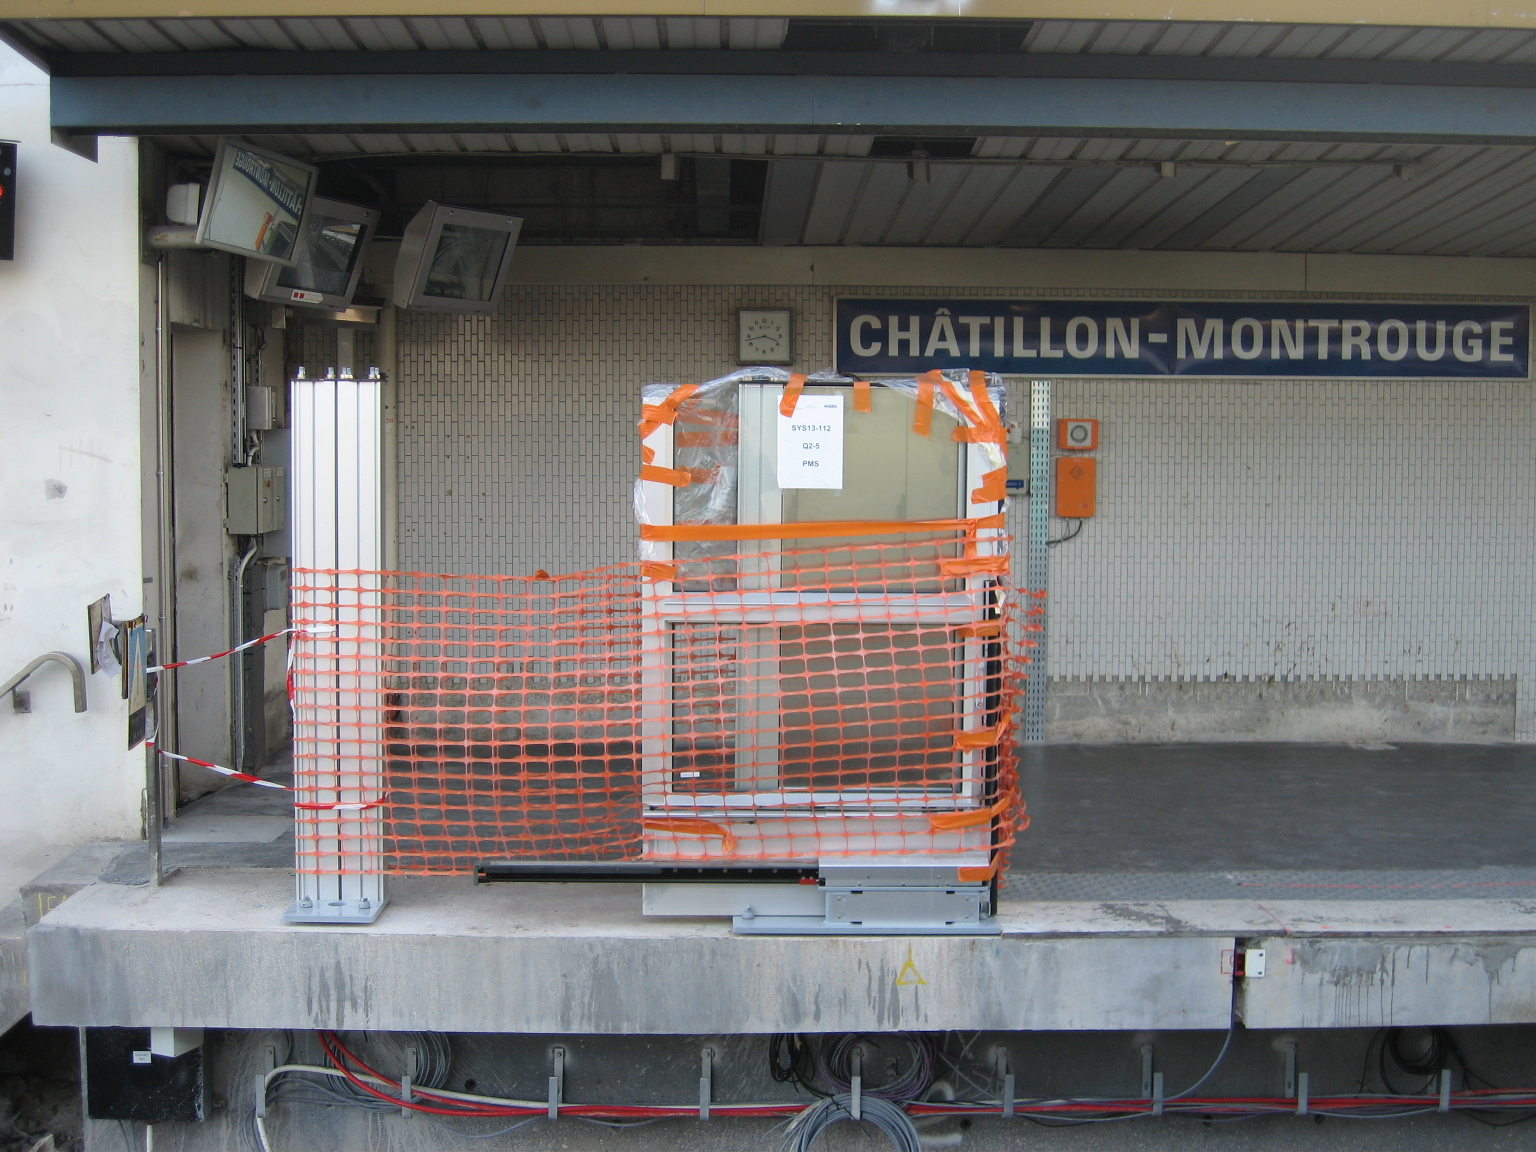 Ch tillon montrouge m tro de paris for Garage chatillon montrouge